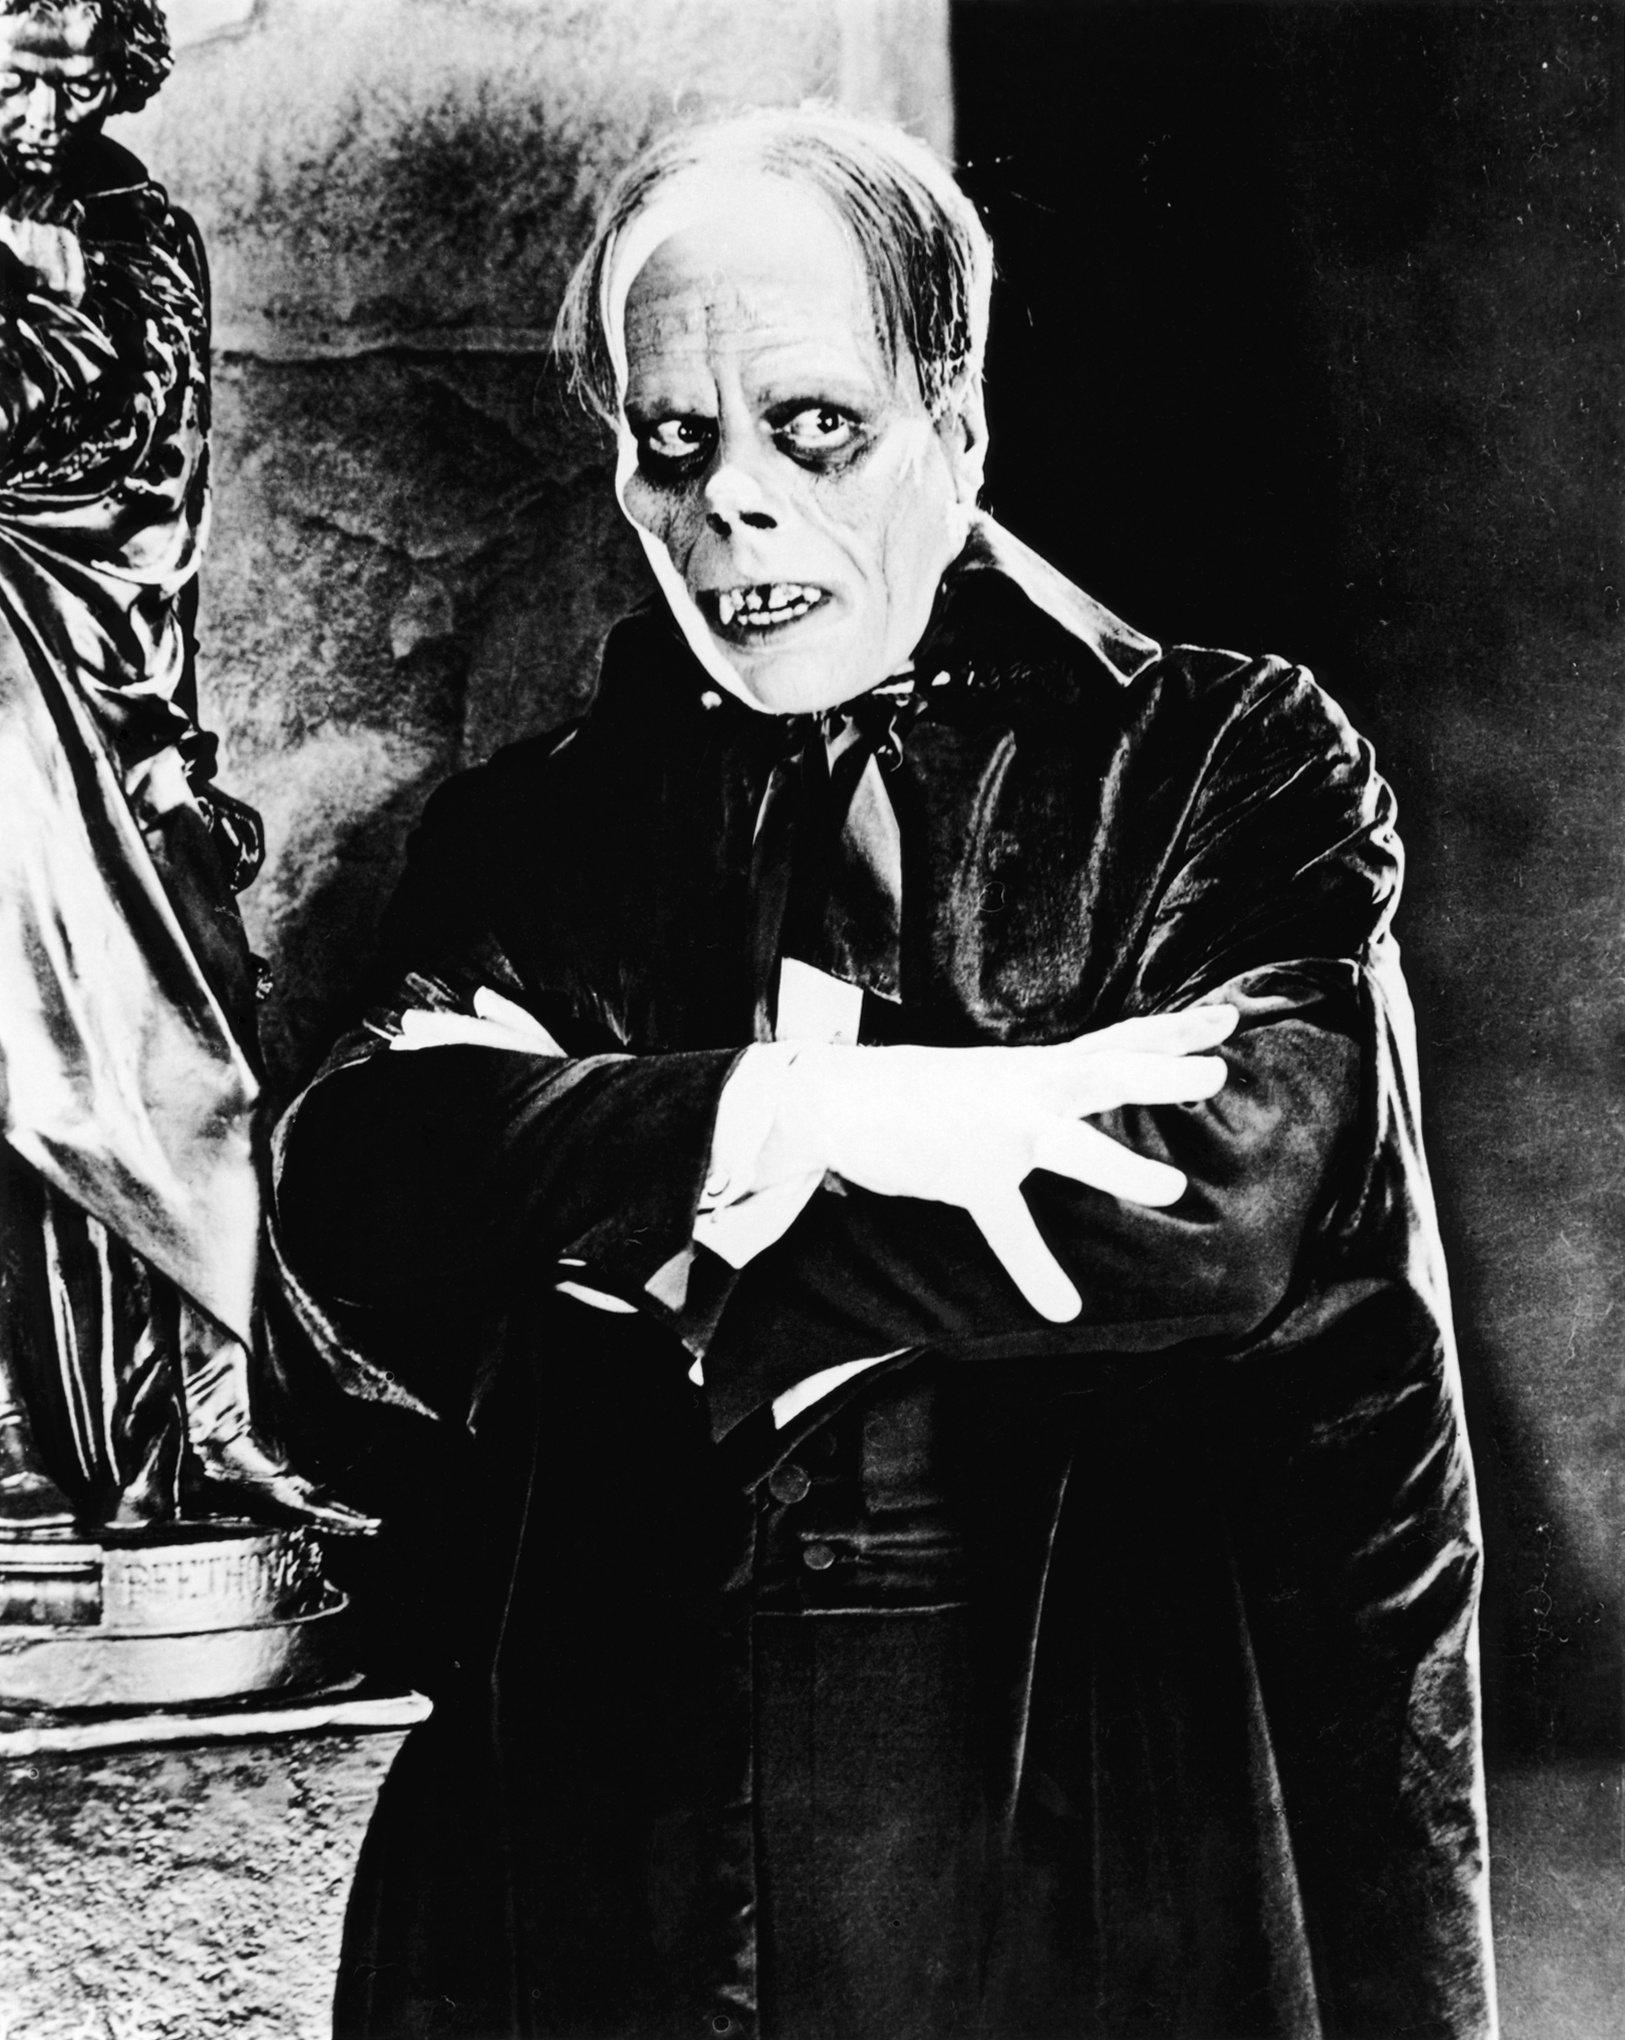 Lon Chaney, Sr. as the Phantom, Phantom of the Opera, 1925